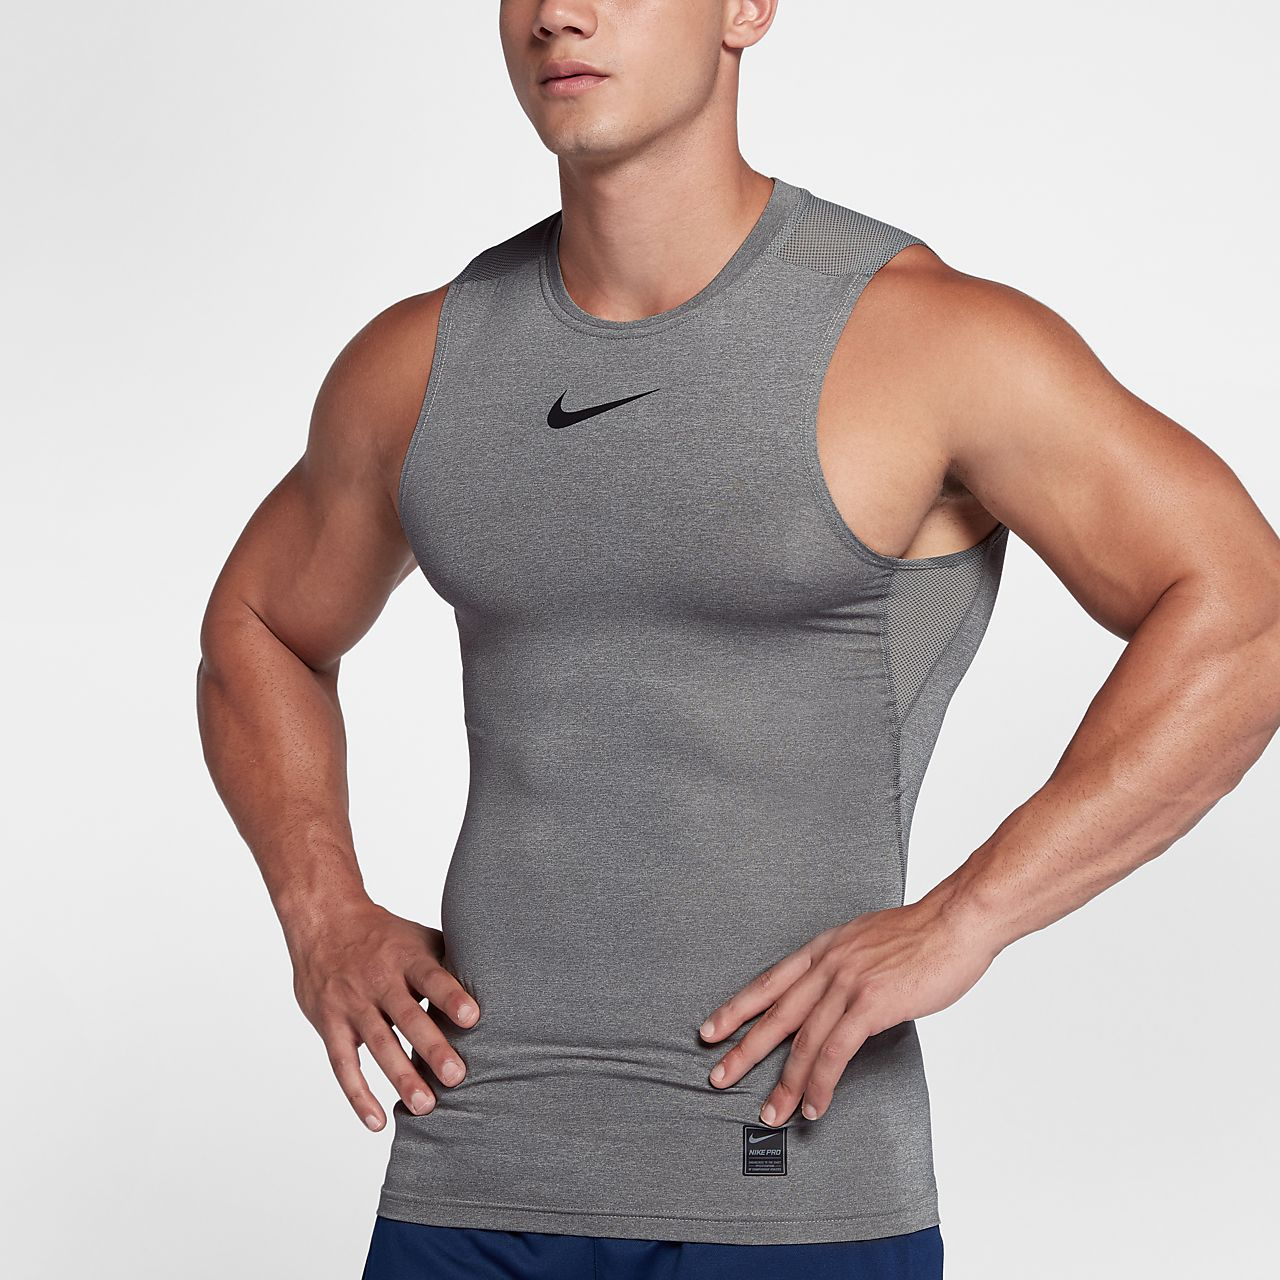 Nike Pro Men's Sleeveless Training Top